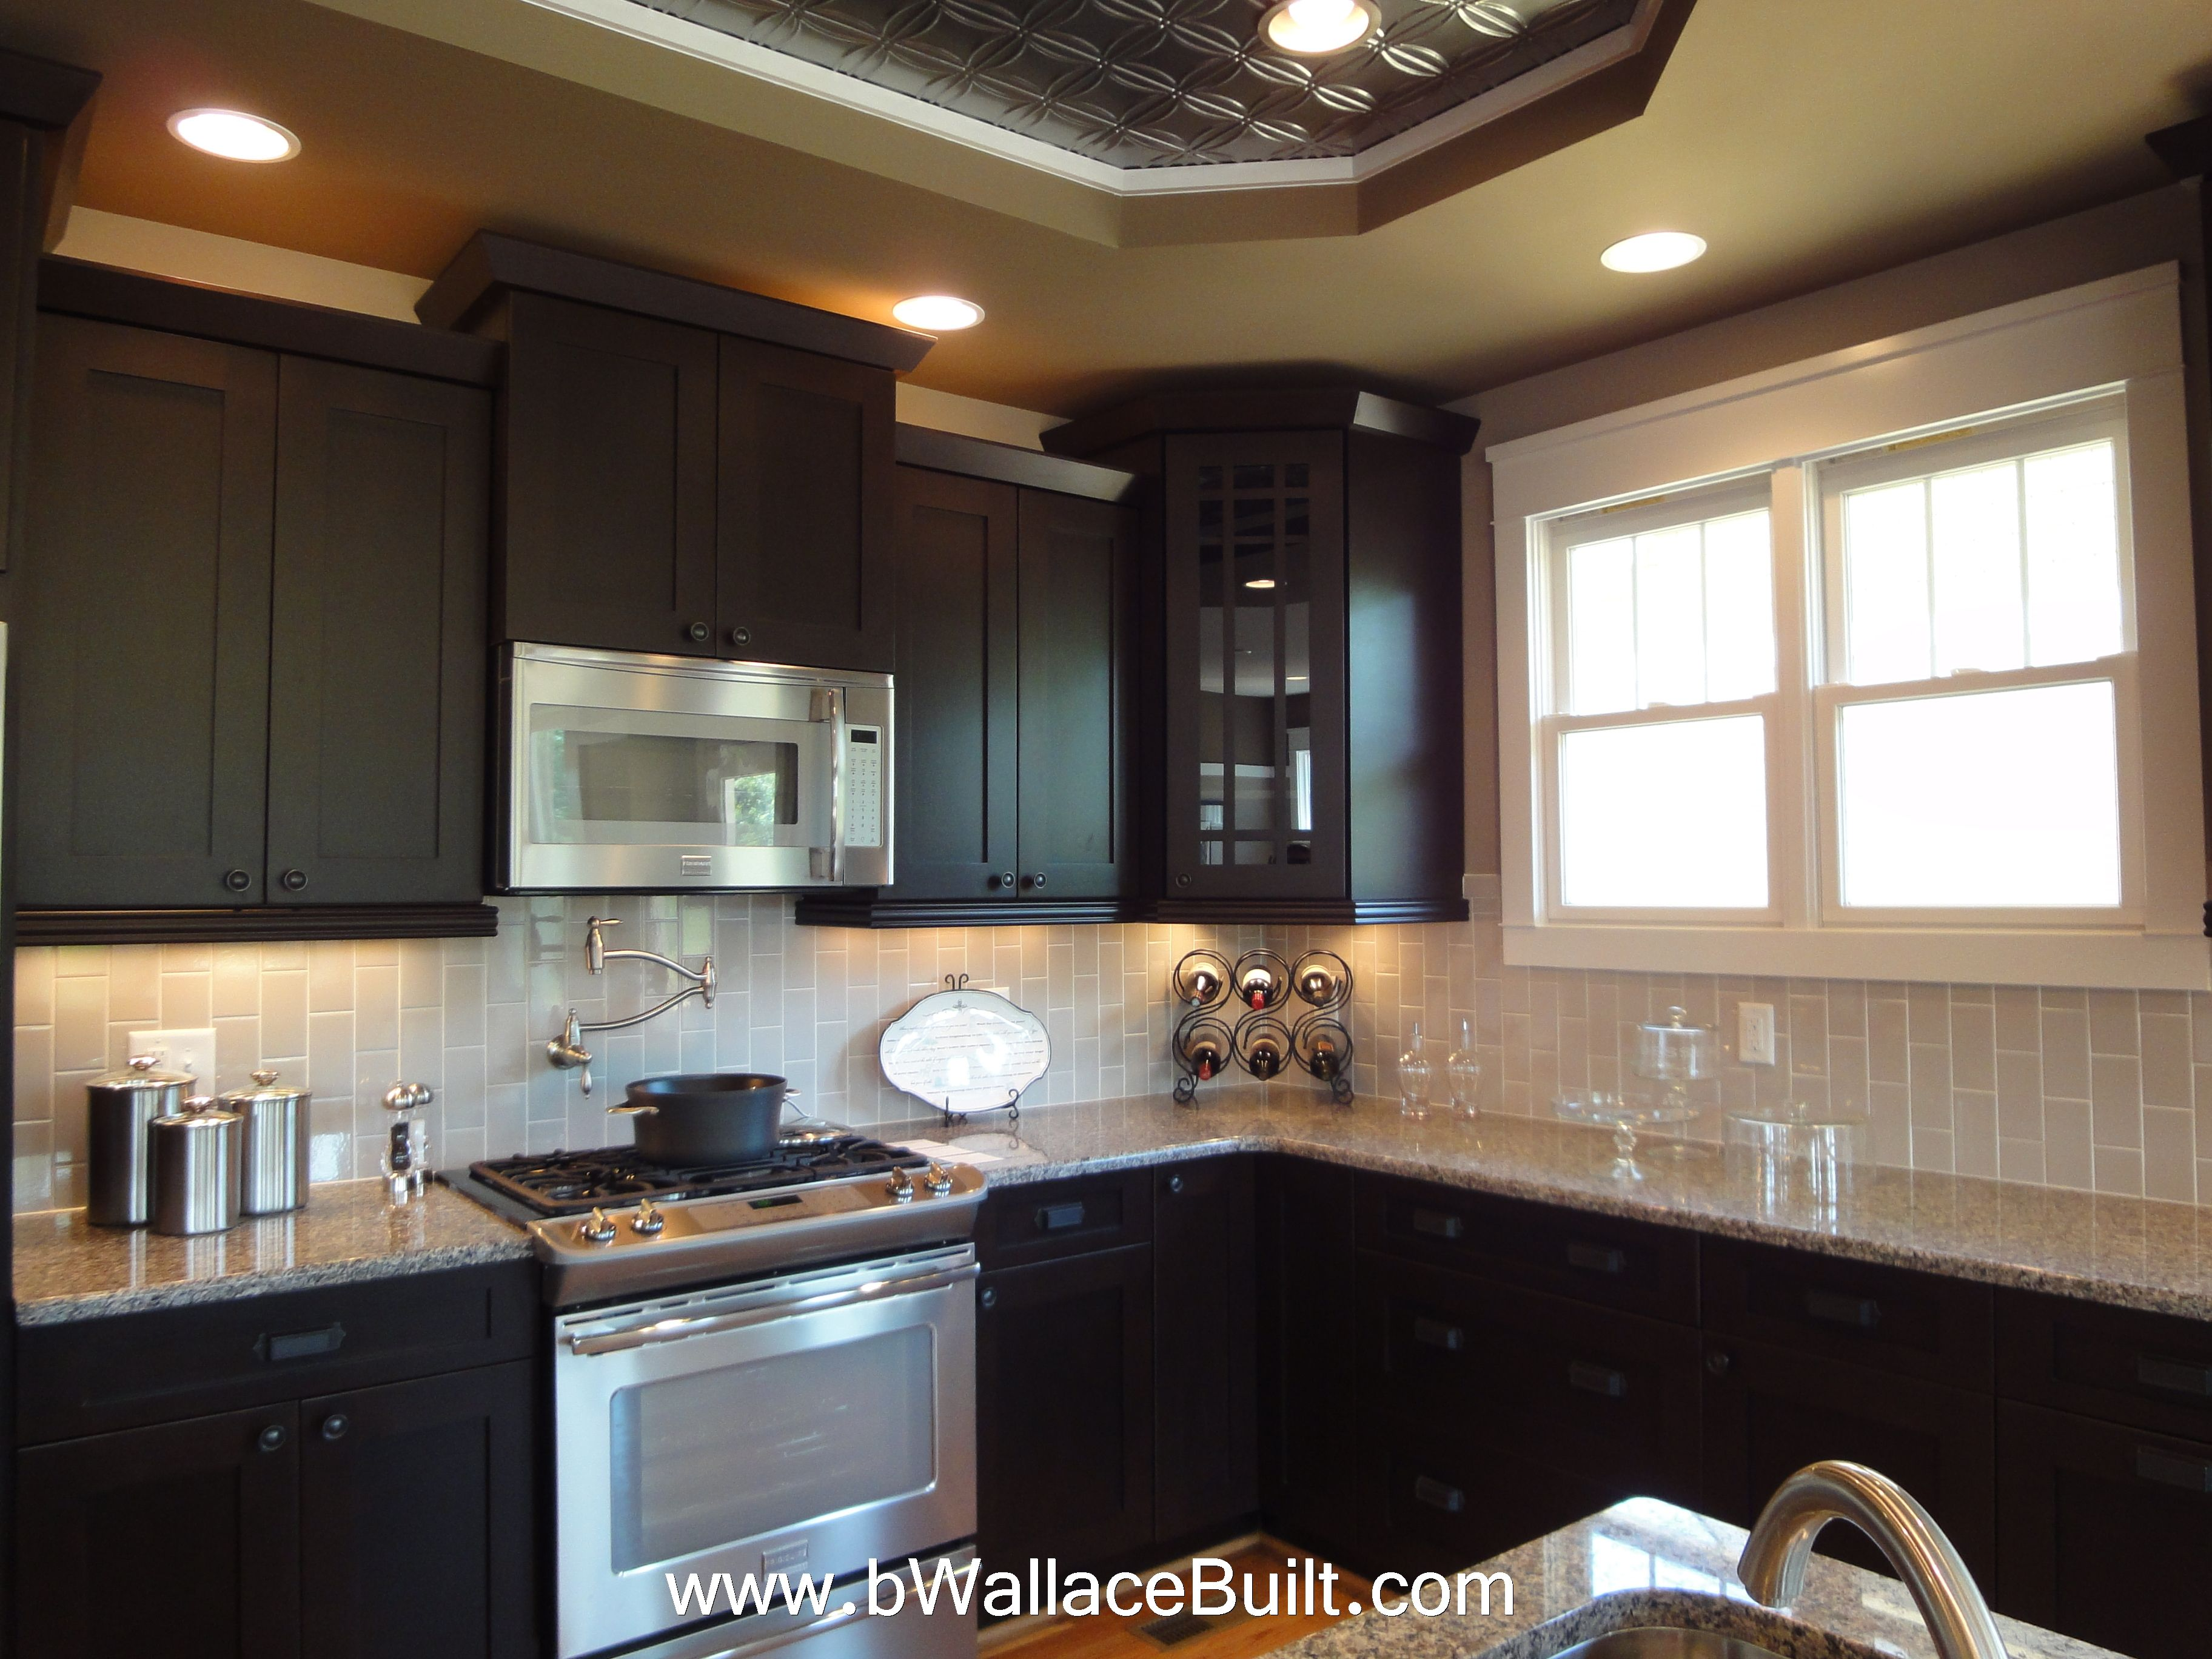 Dark Cabinets Light Granite Countertops And Grey Vertical Subway